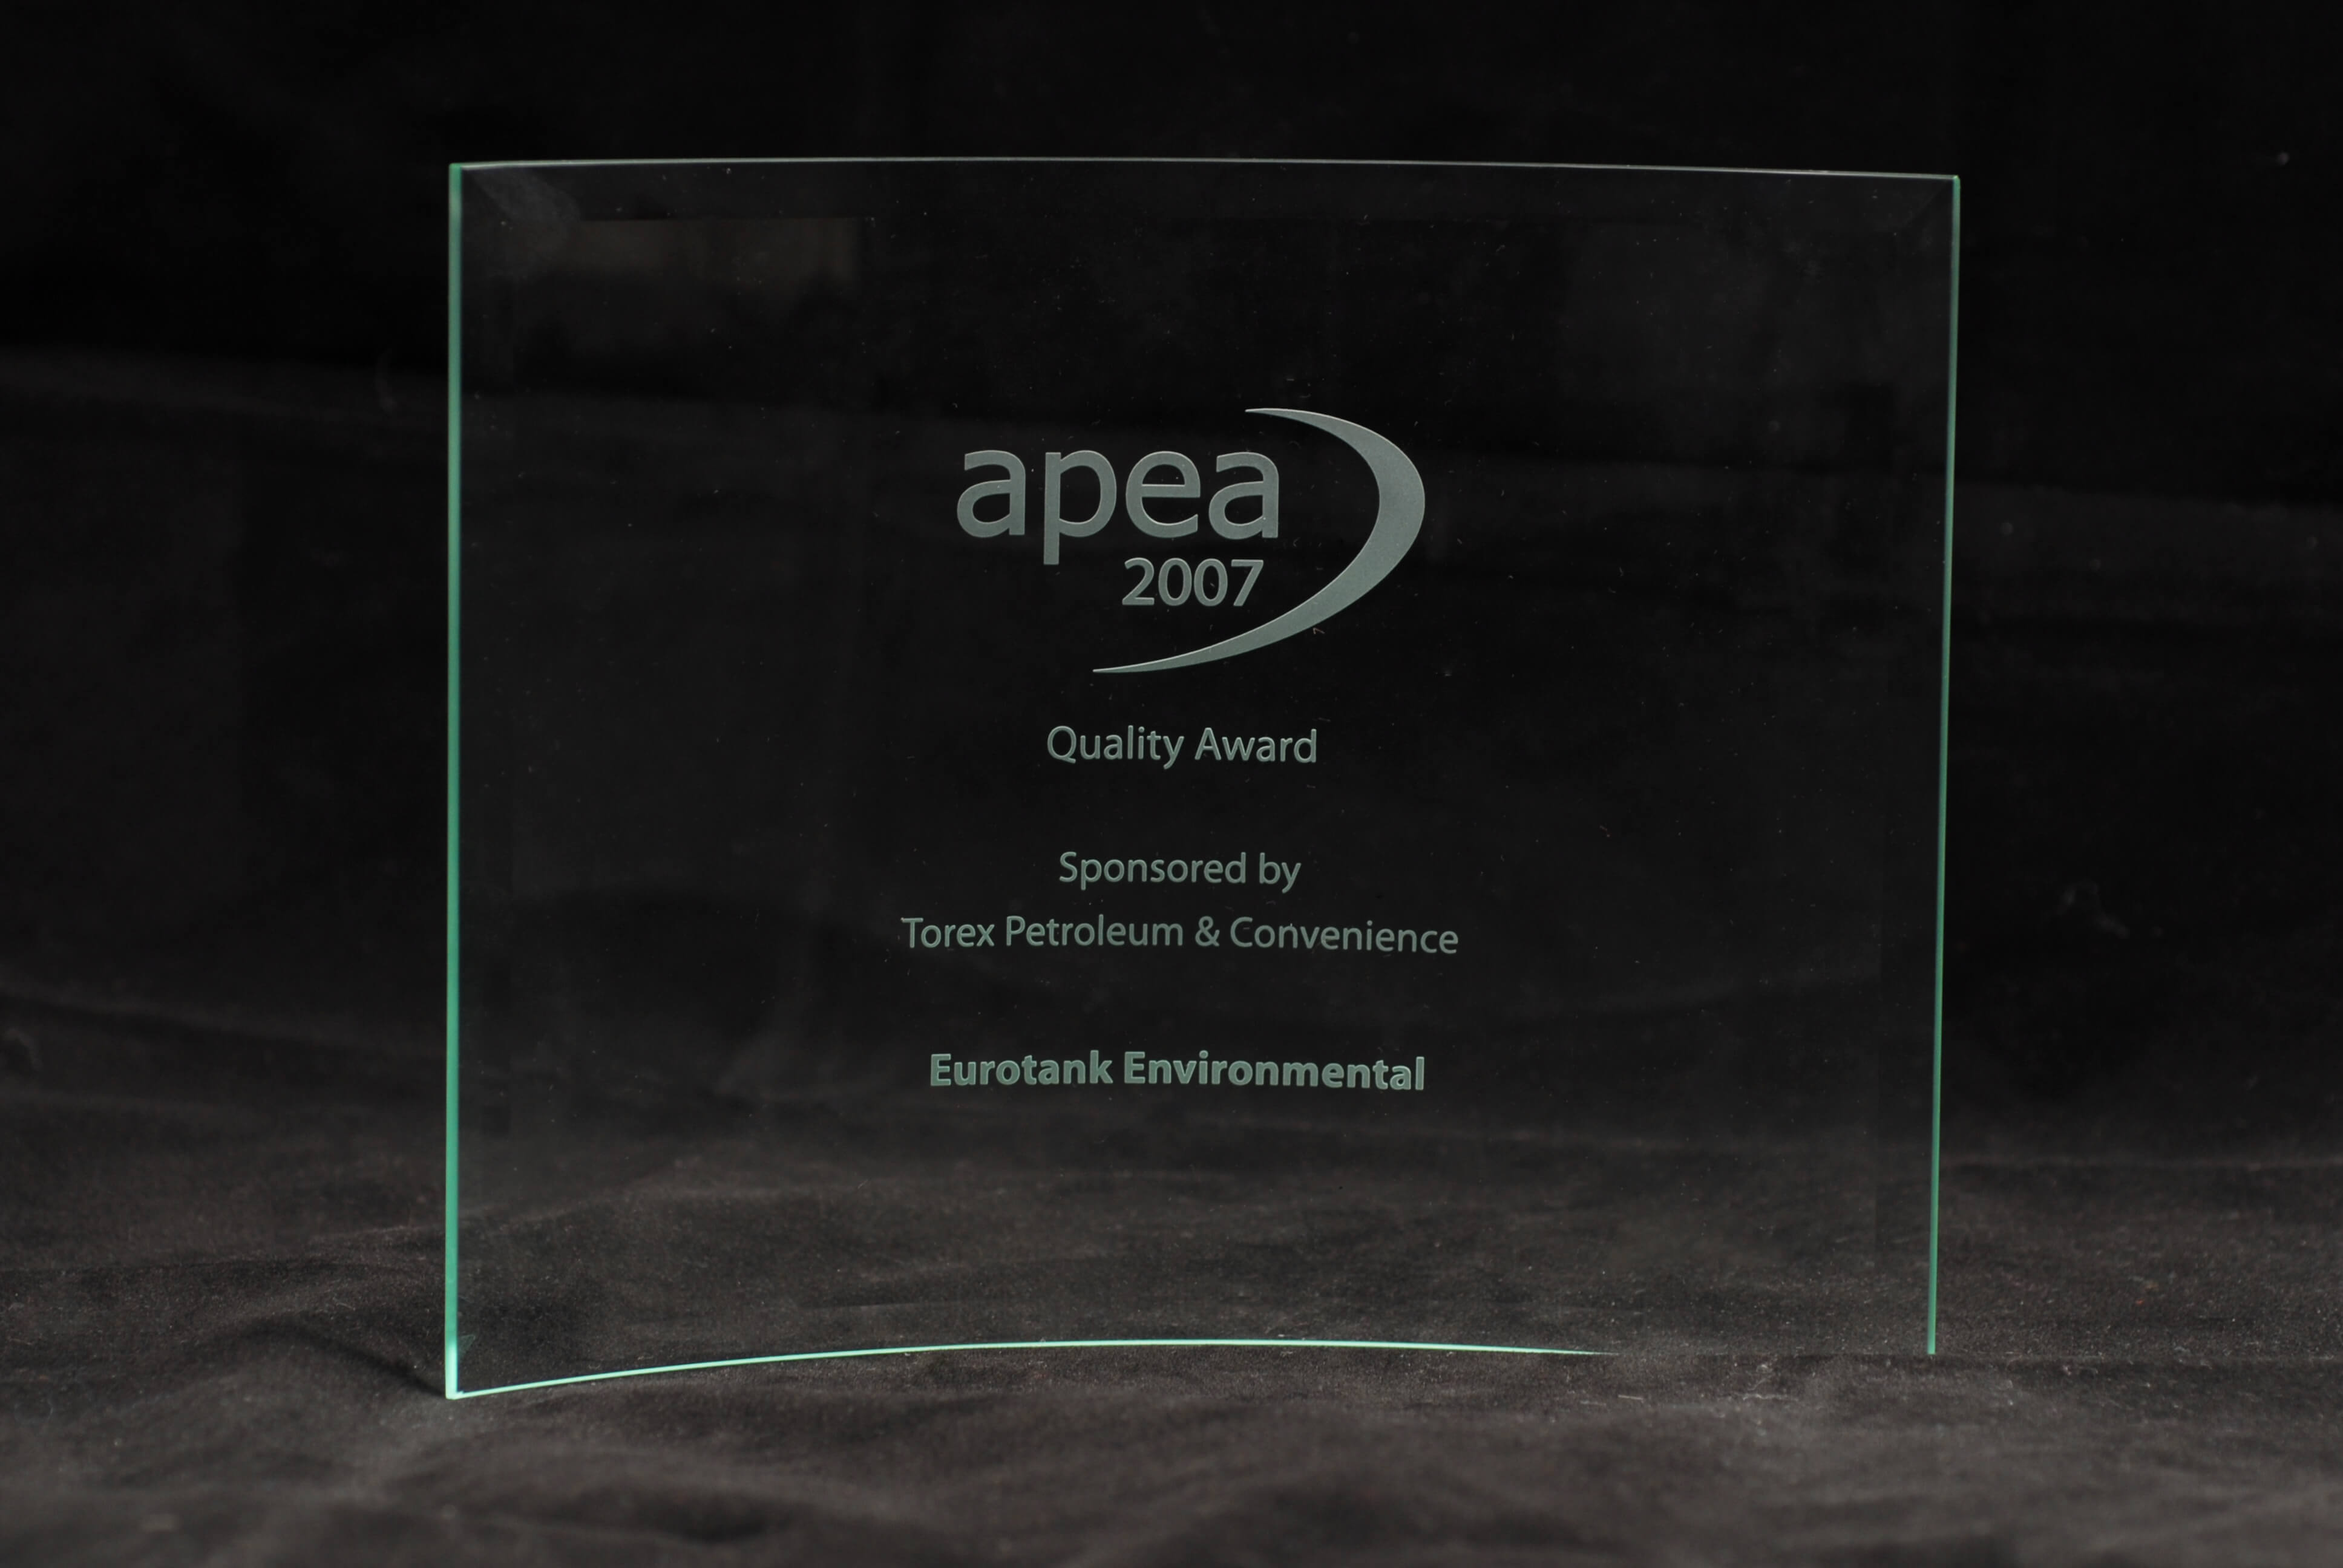 APEA Quality Award for the investment in IOSH Managing Safely training